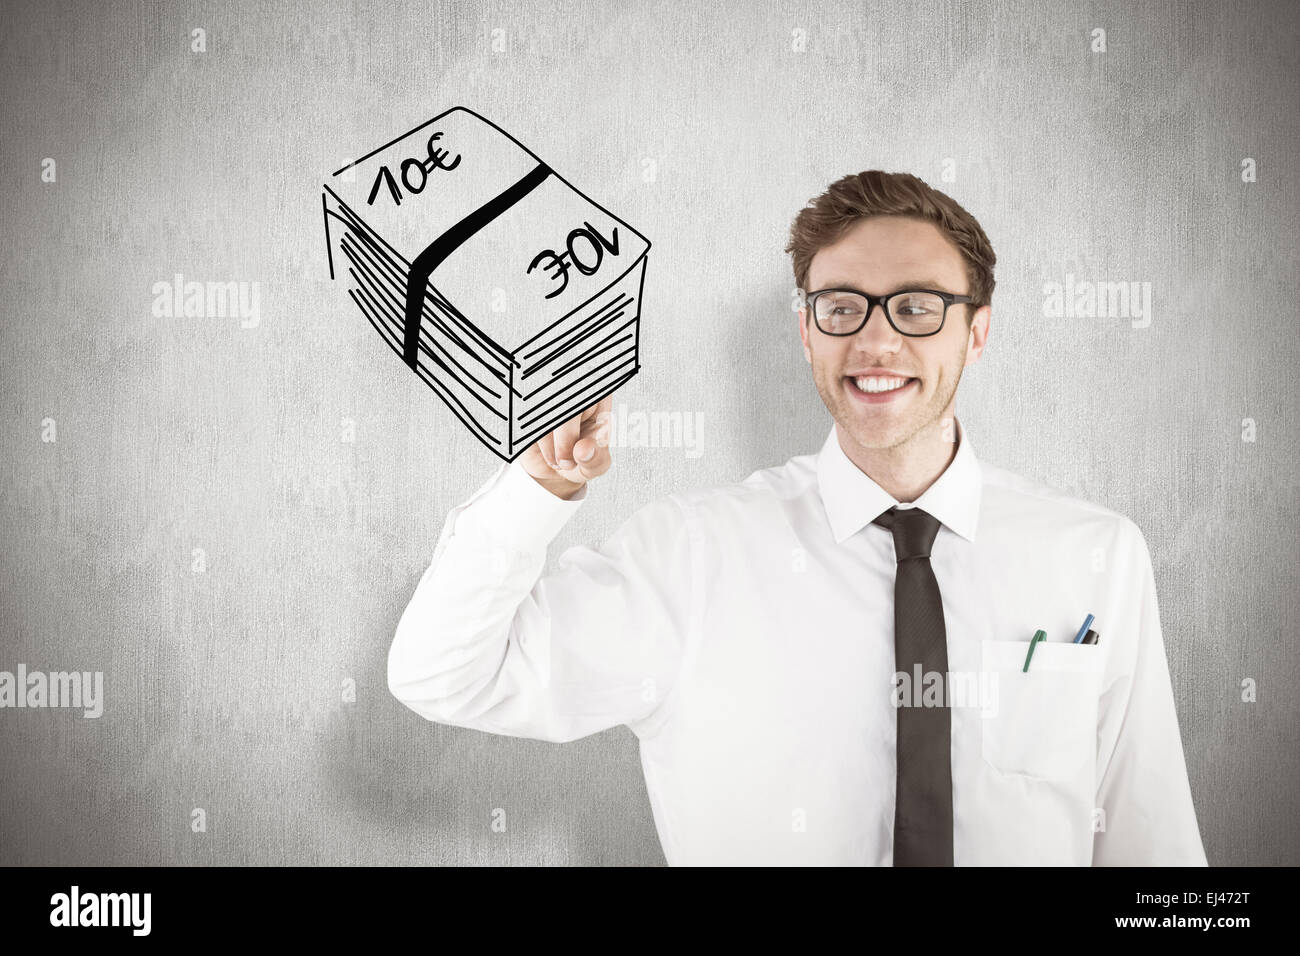 Composite image of geeky businessman smiling and pointing - Stock Image